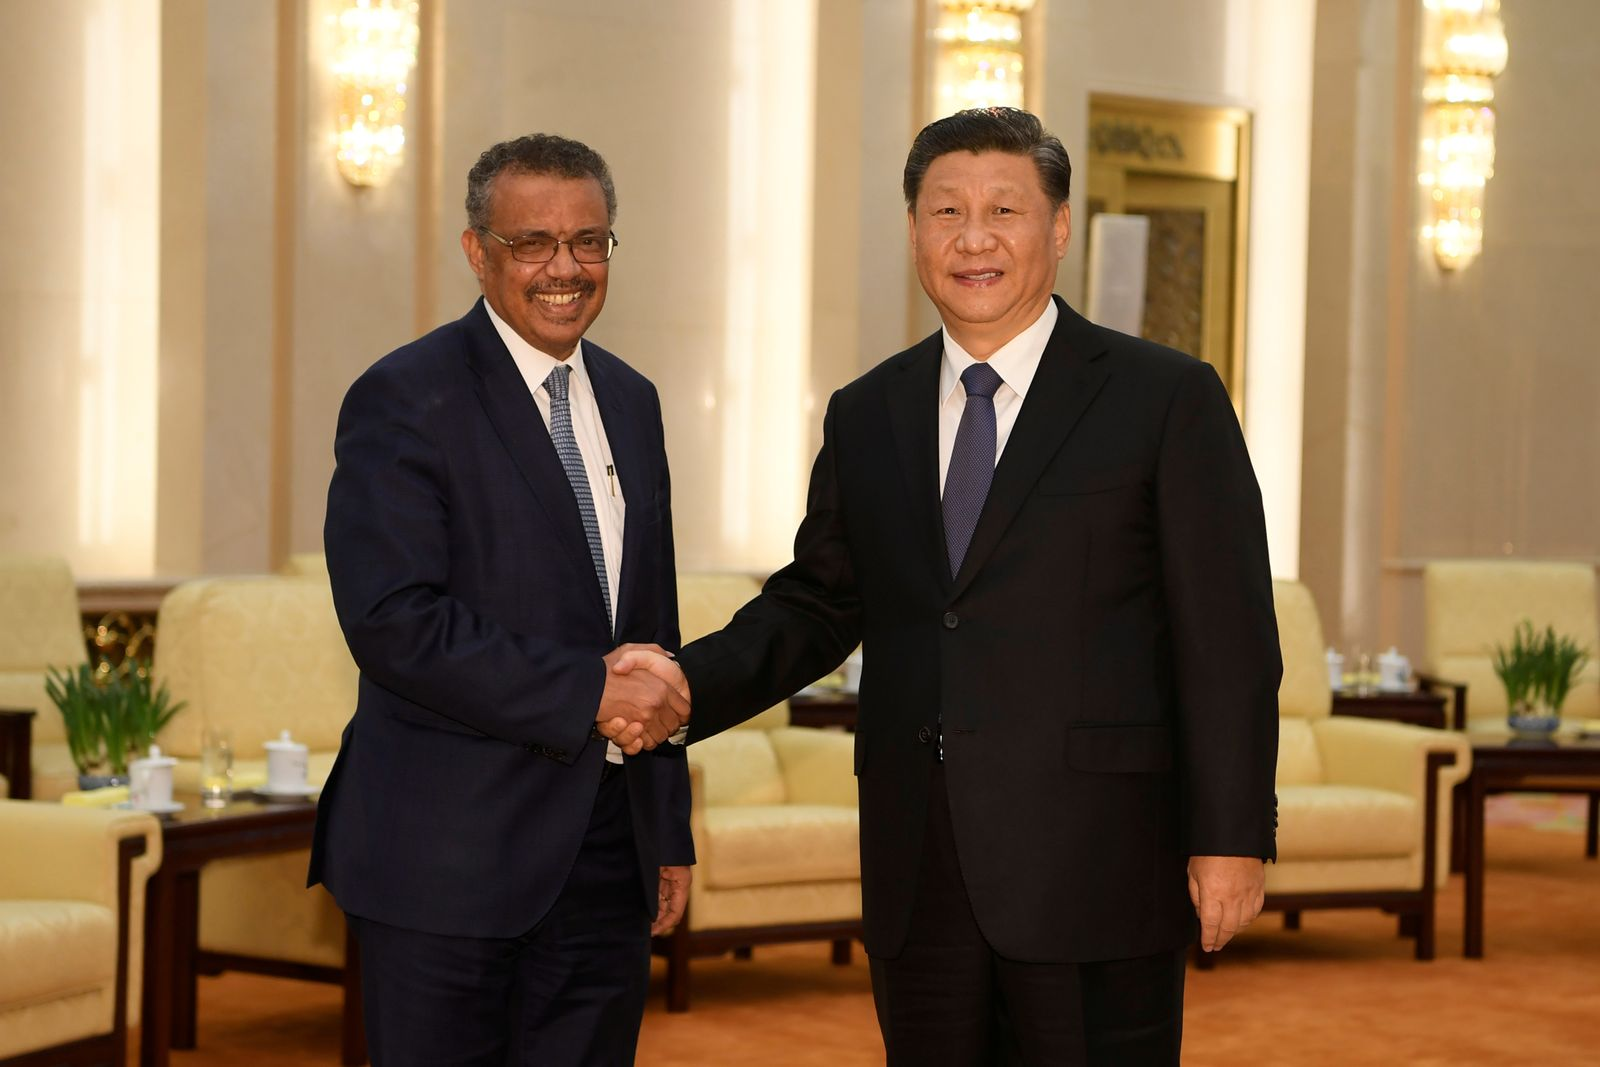 Tedros Adhanom, director general of the World Health Organization, shakes hands with Chinese President Xi jinping before a meeting at the Great Hall of the People in Beijing